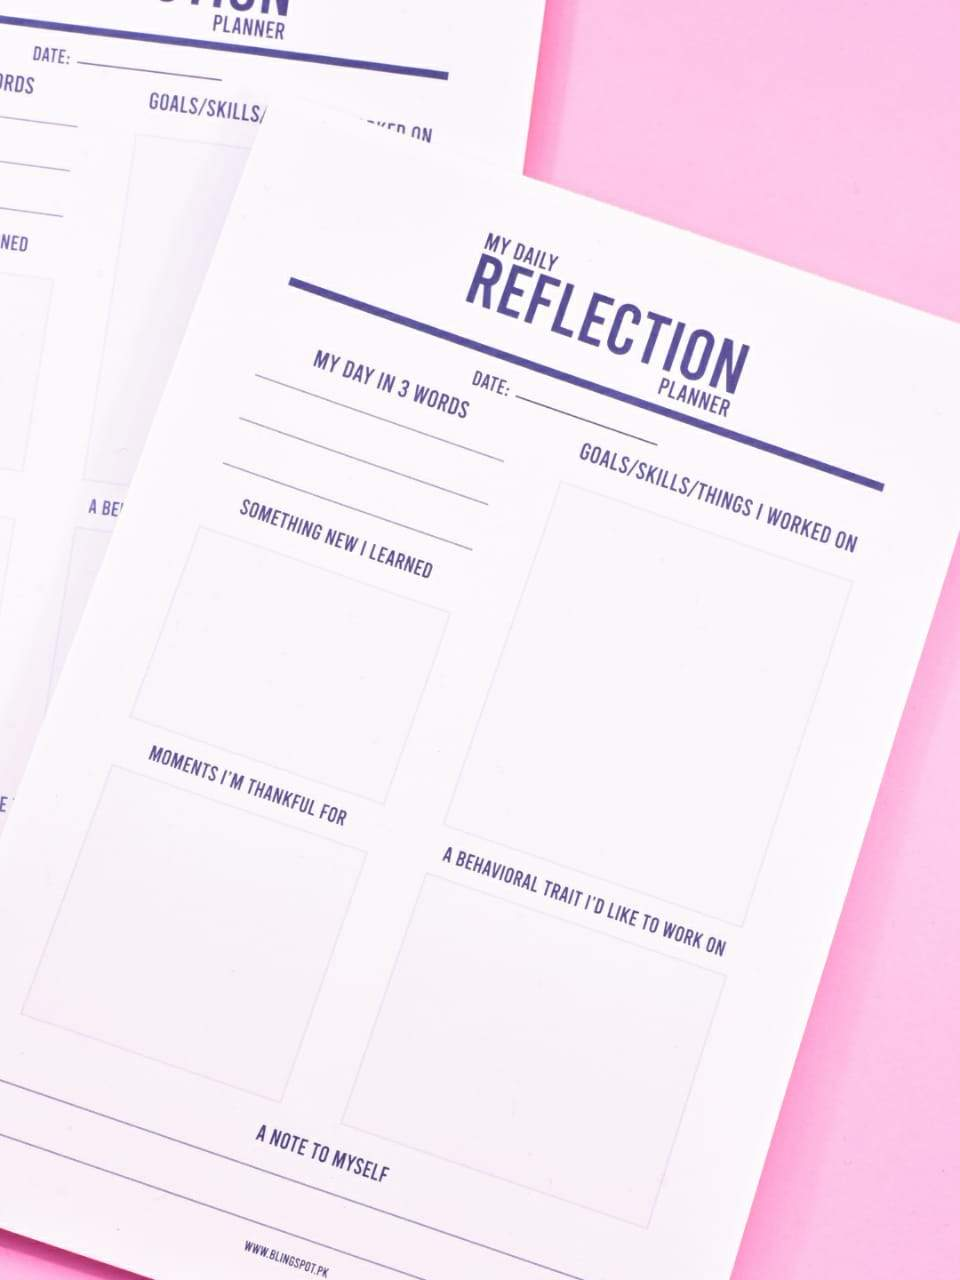 My Daily Reflection Planner - Notepad